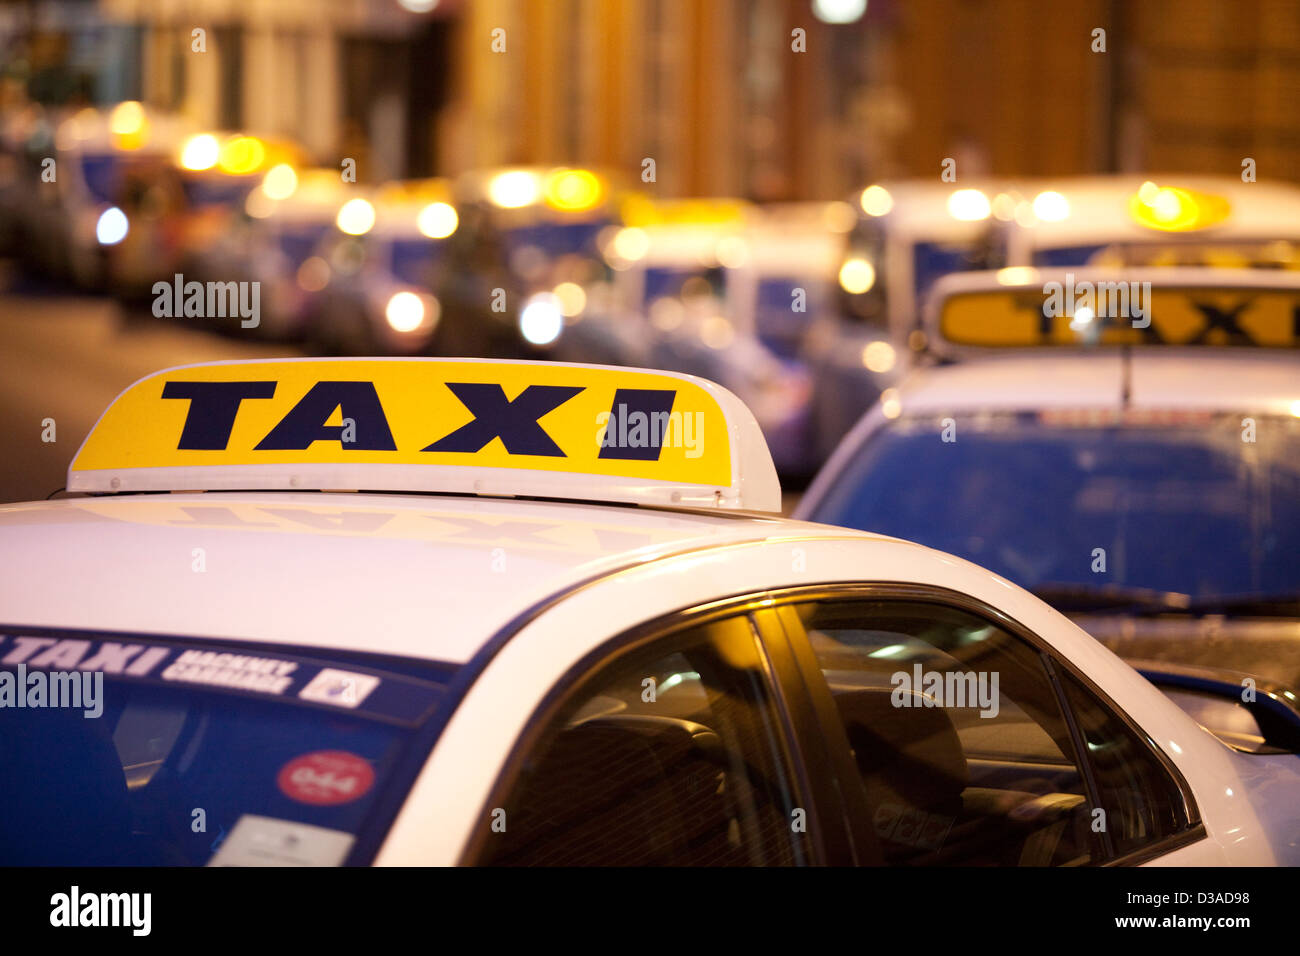 Taxi cabs and rank in Leeds , West Yorkshire - Stock Image